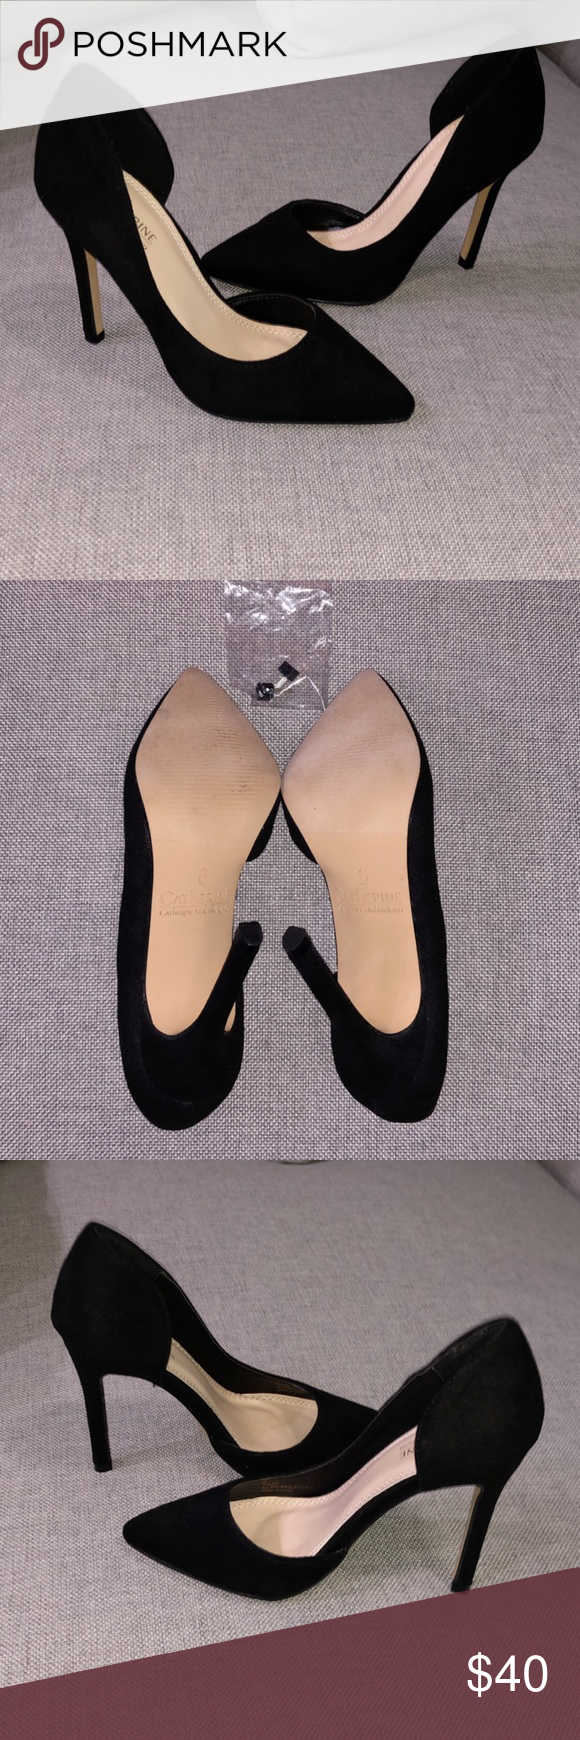 dd4c82550a7 Black Suede Heels Catherine Malandrino Beautiful Black Suede Heels. Brand  new! Hillary d